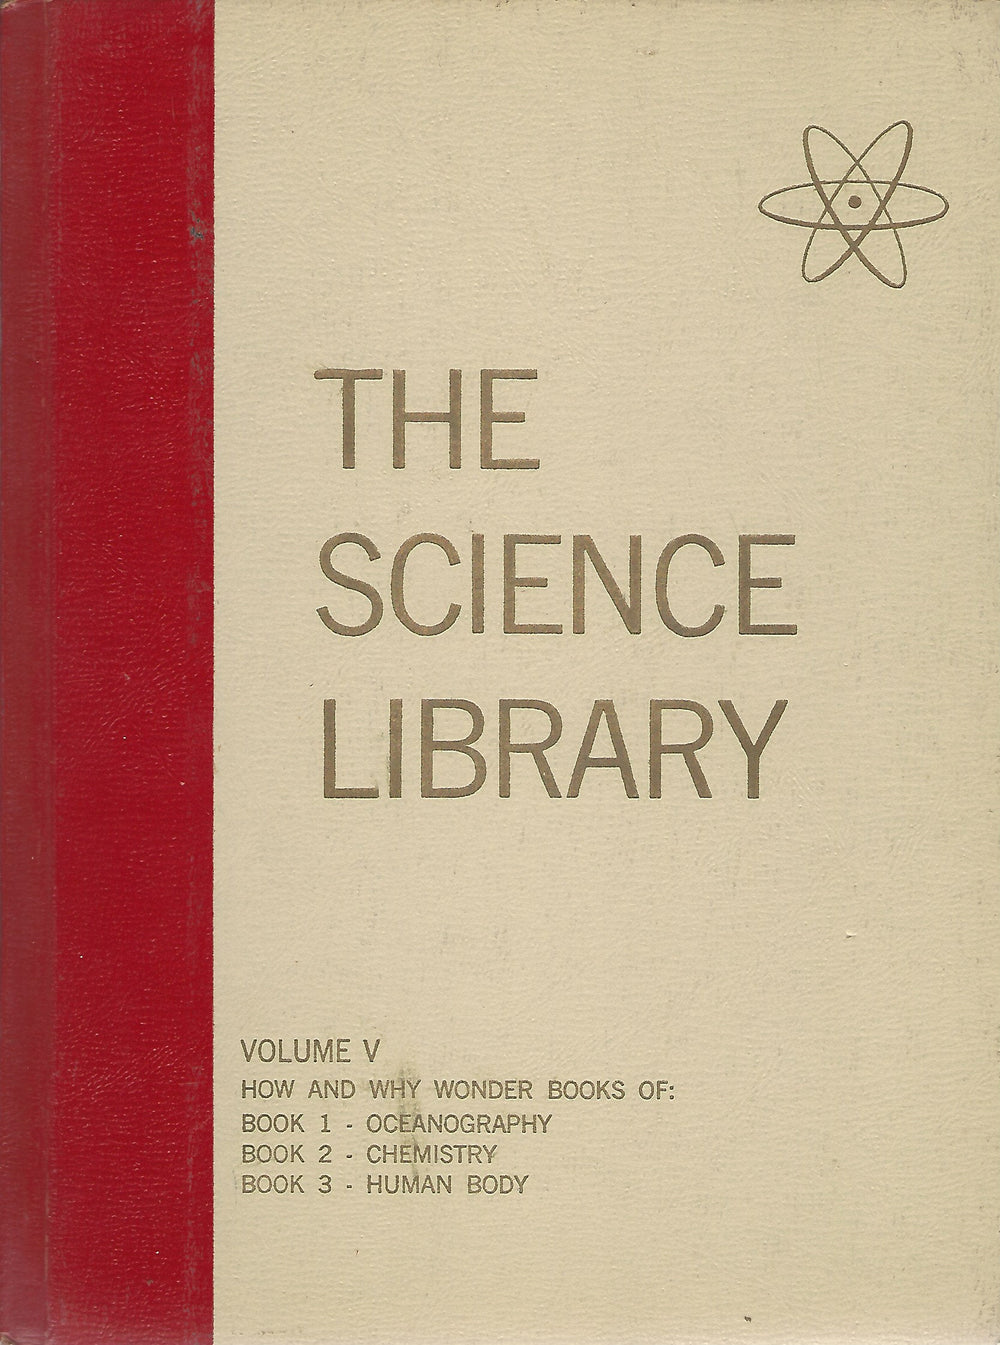 Science Library; Volume  V   The How and Why Wonder Books  Written by Felix Sutton  (1964)